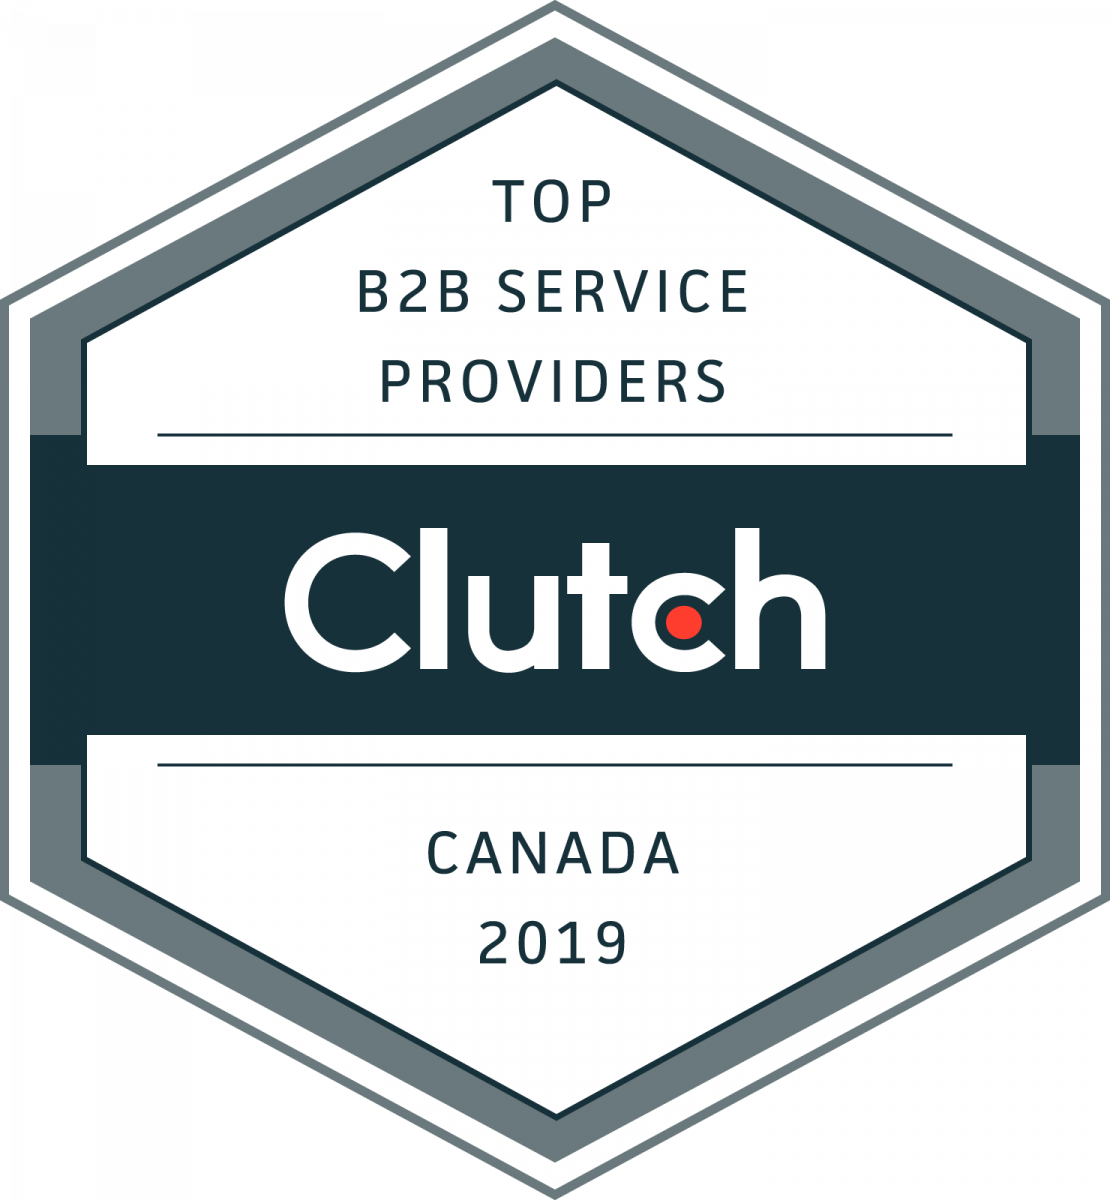 N2 marketing is the number 1 seo agency in vancouver as rated by clutch